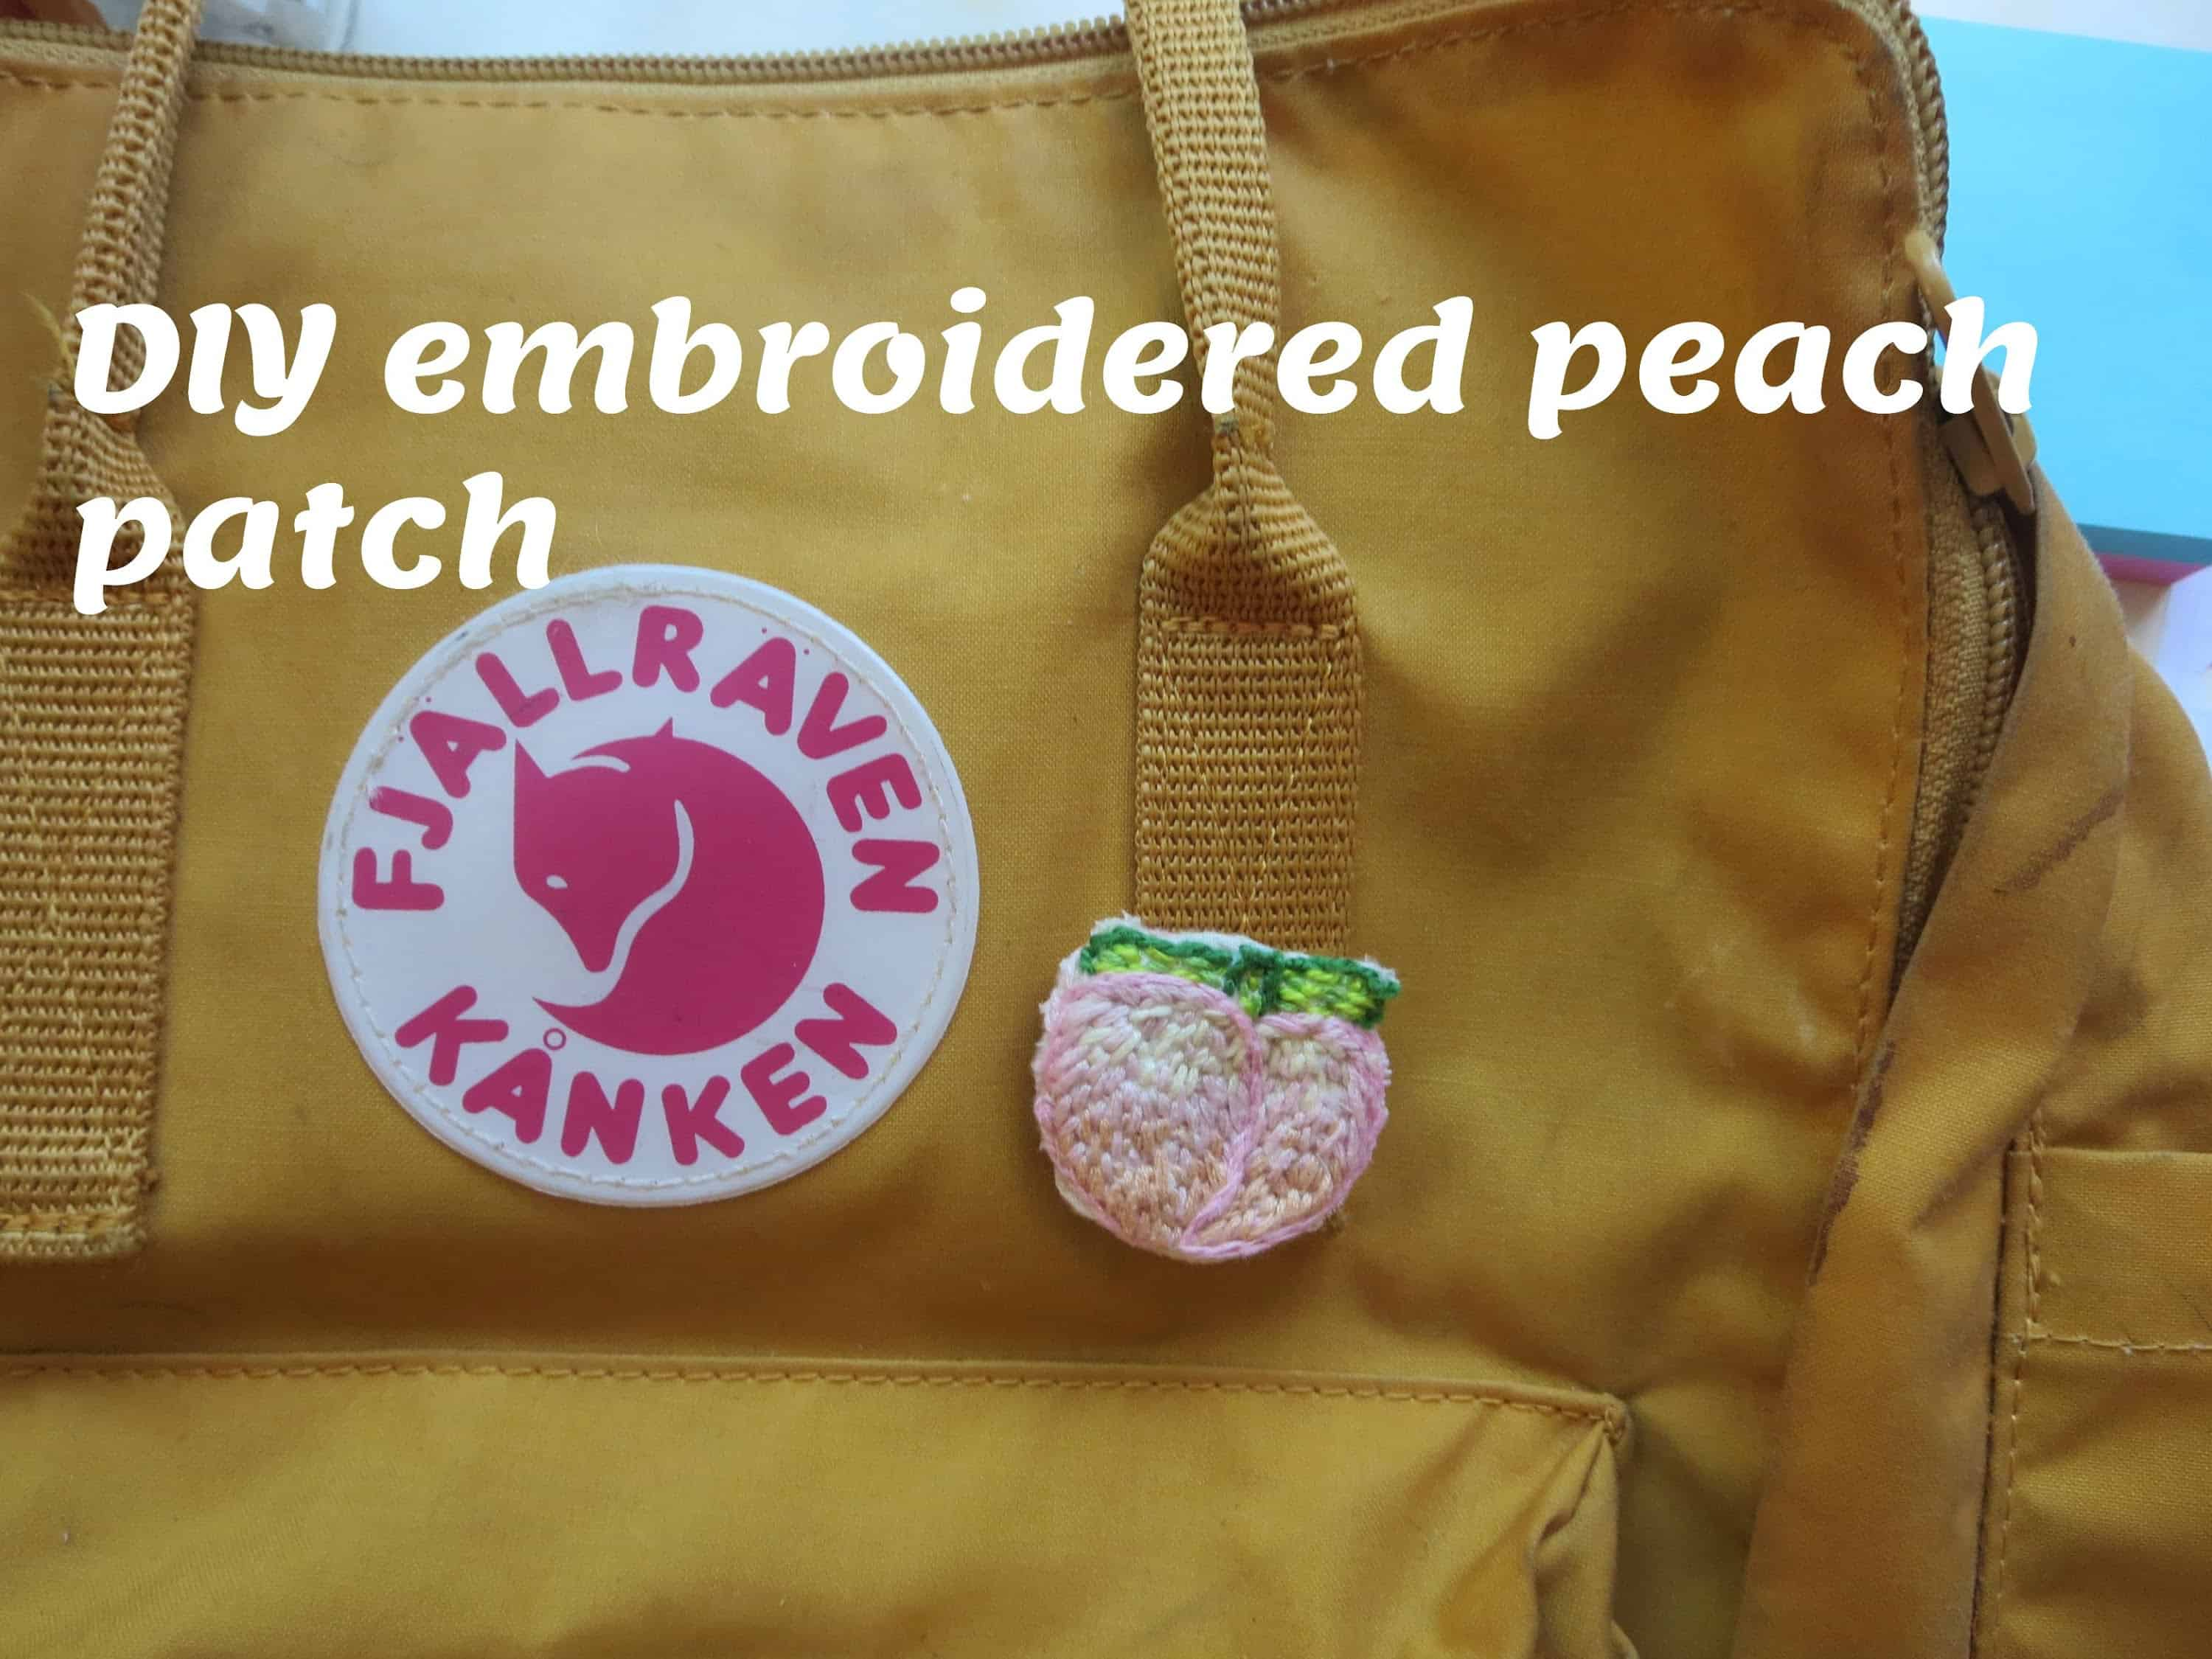 Emrboidered peach patch